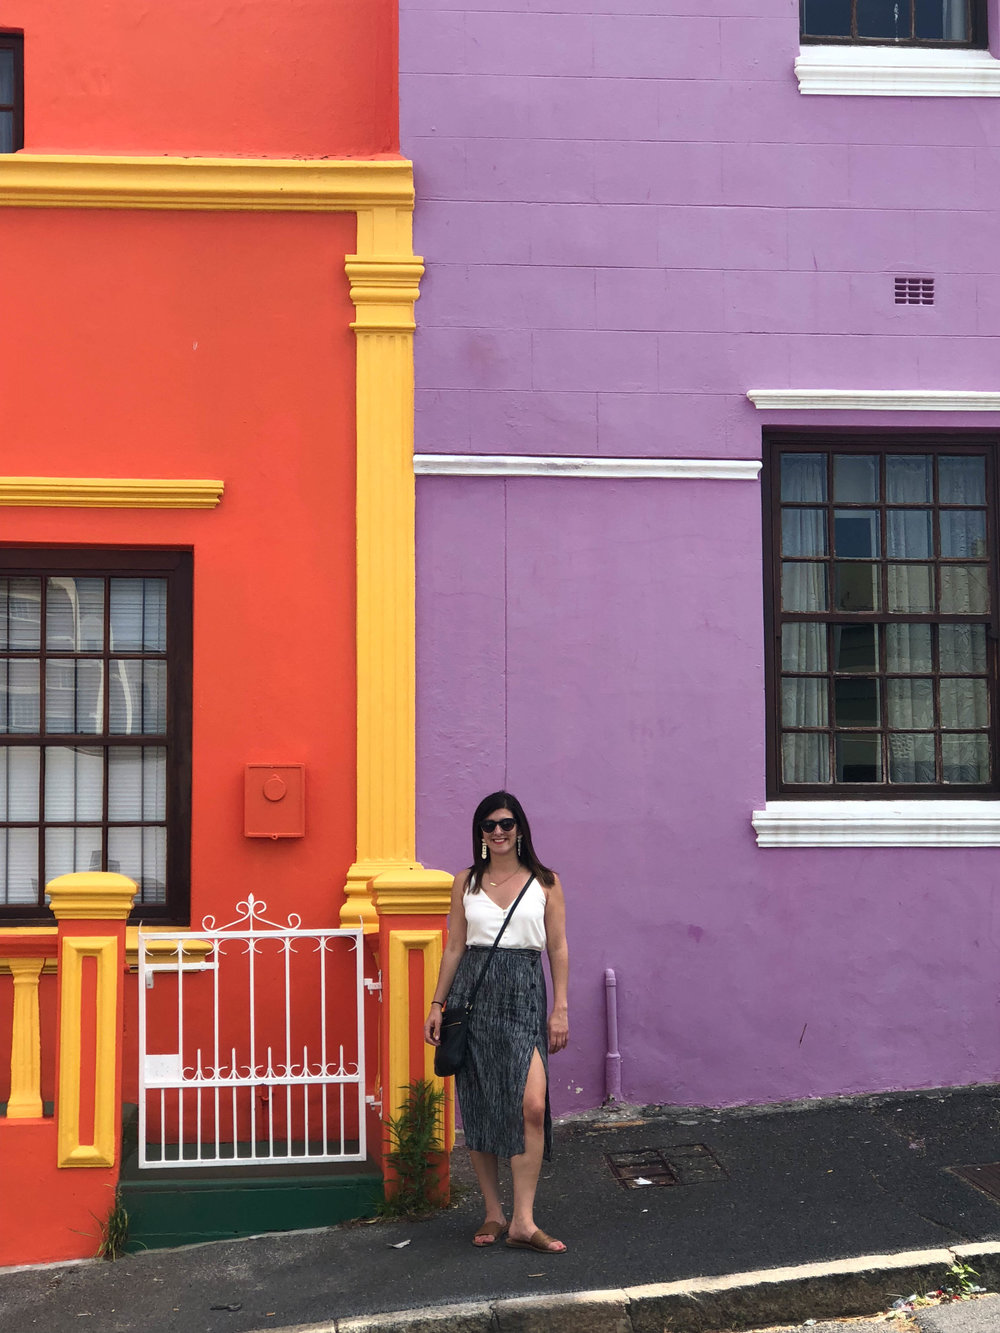 Obviously I had to pose in front of the Clemson houses